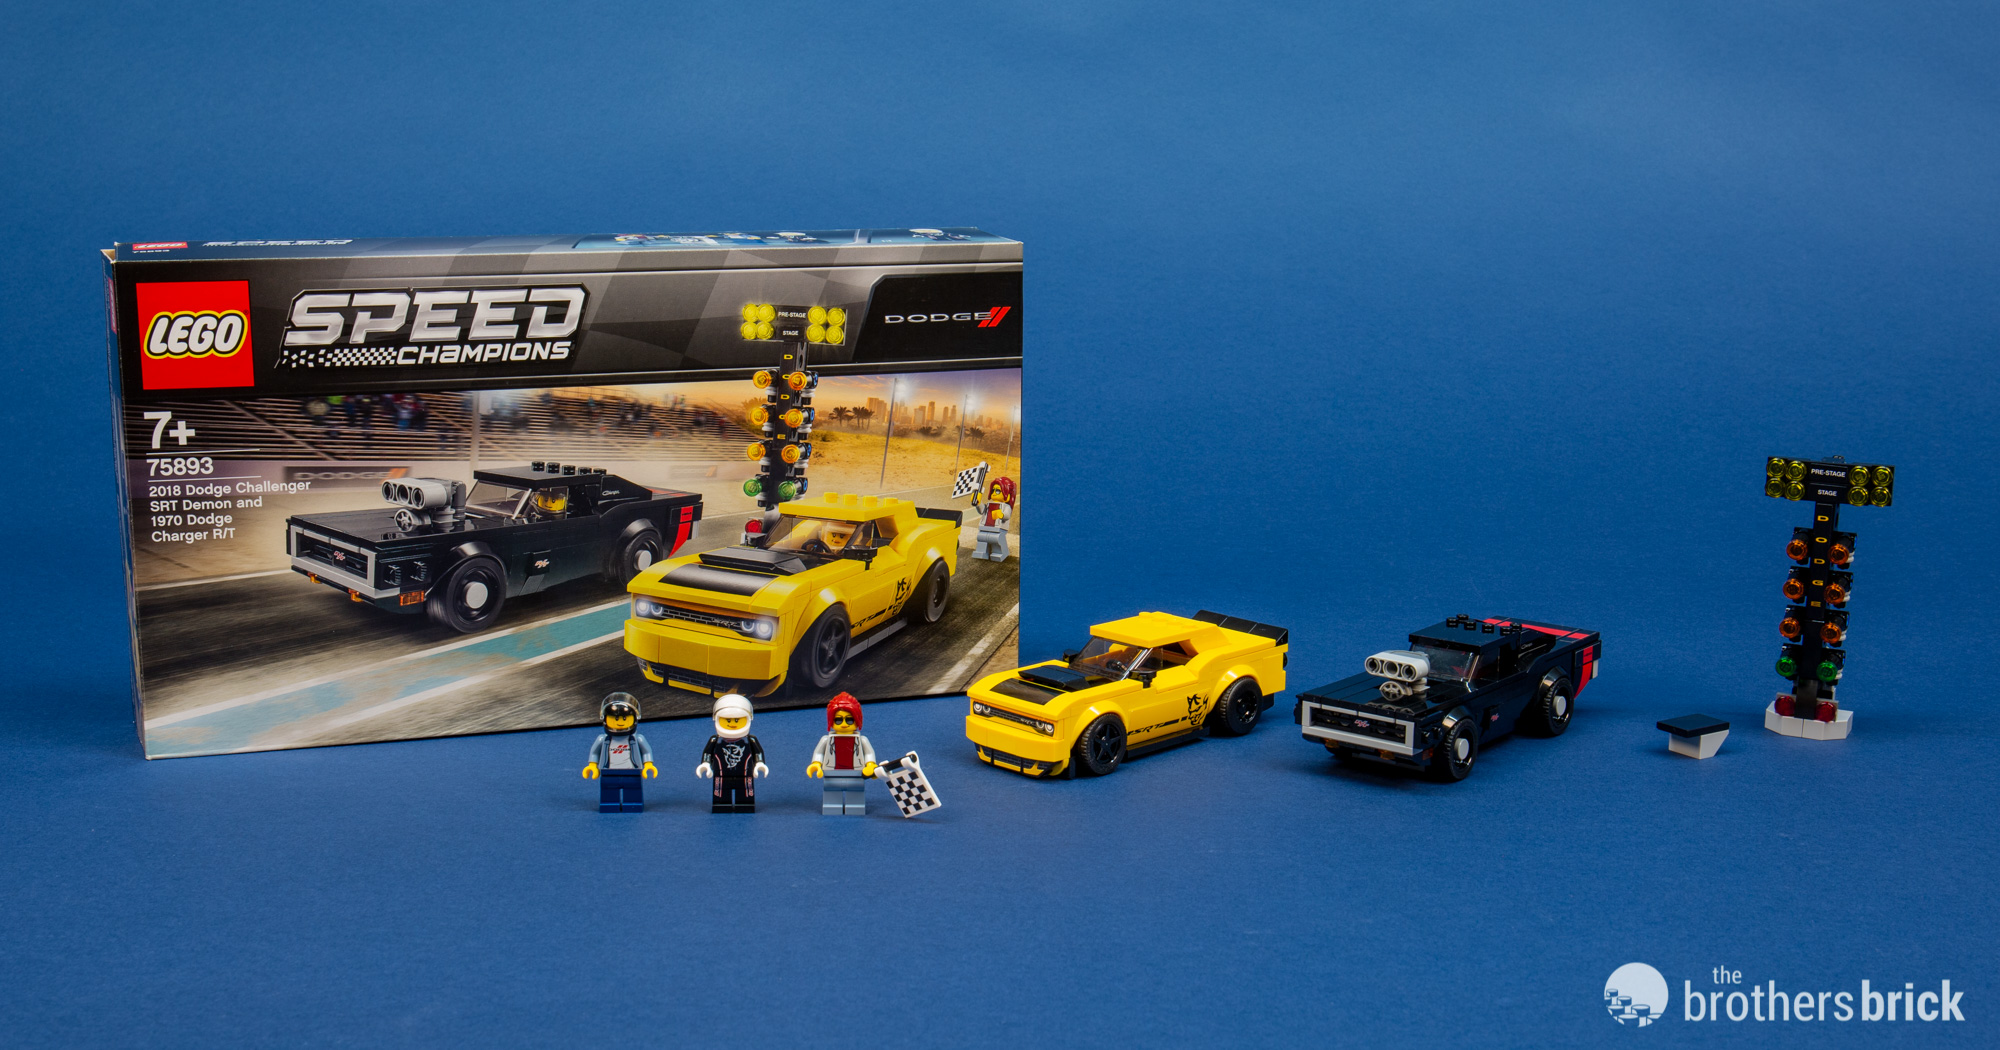 Lego Speed Champions 75893 2018 Dodge Challenger Srt Demon And 1970 Dodge Charger R T Review The Brothers Brick The Brothers Brick